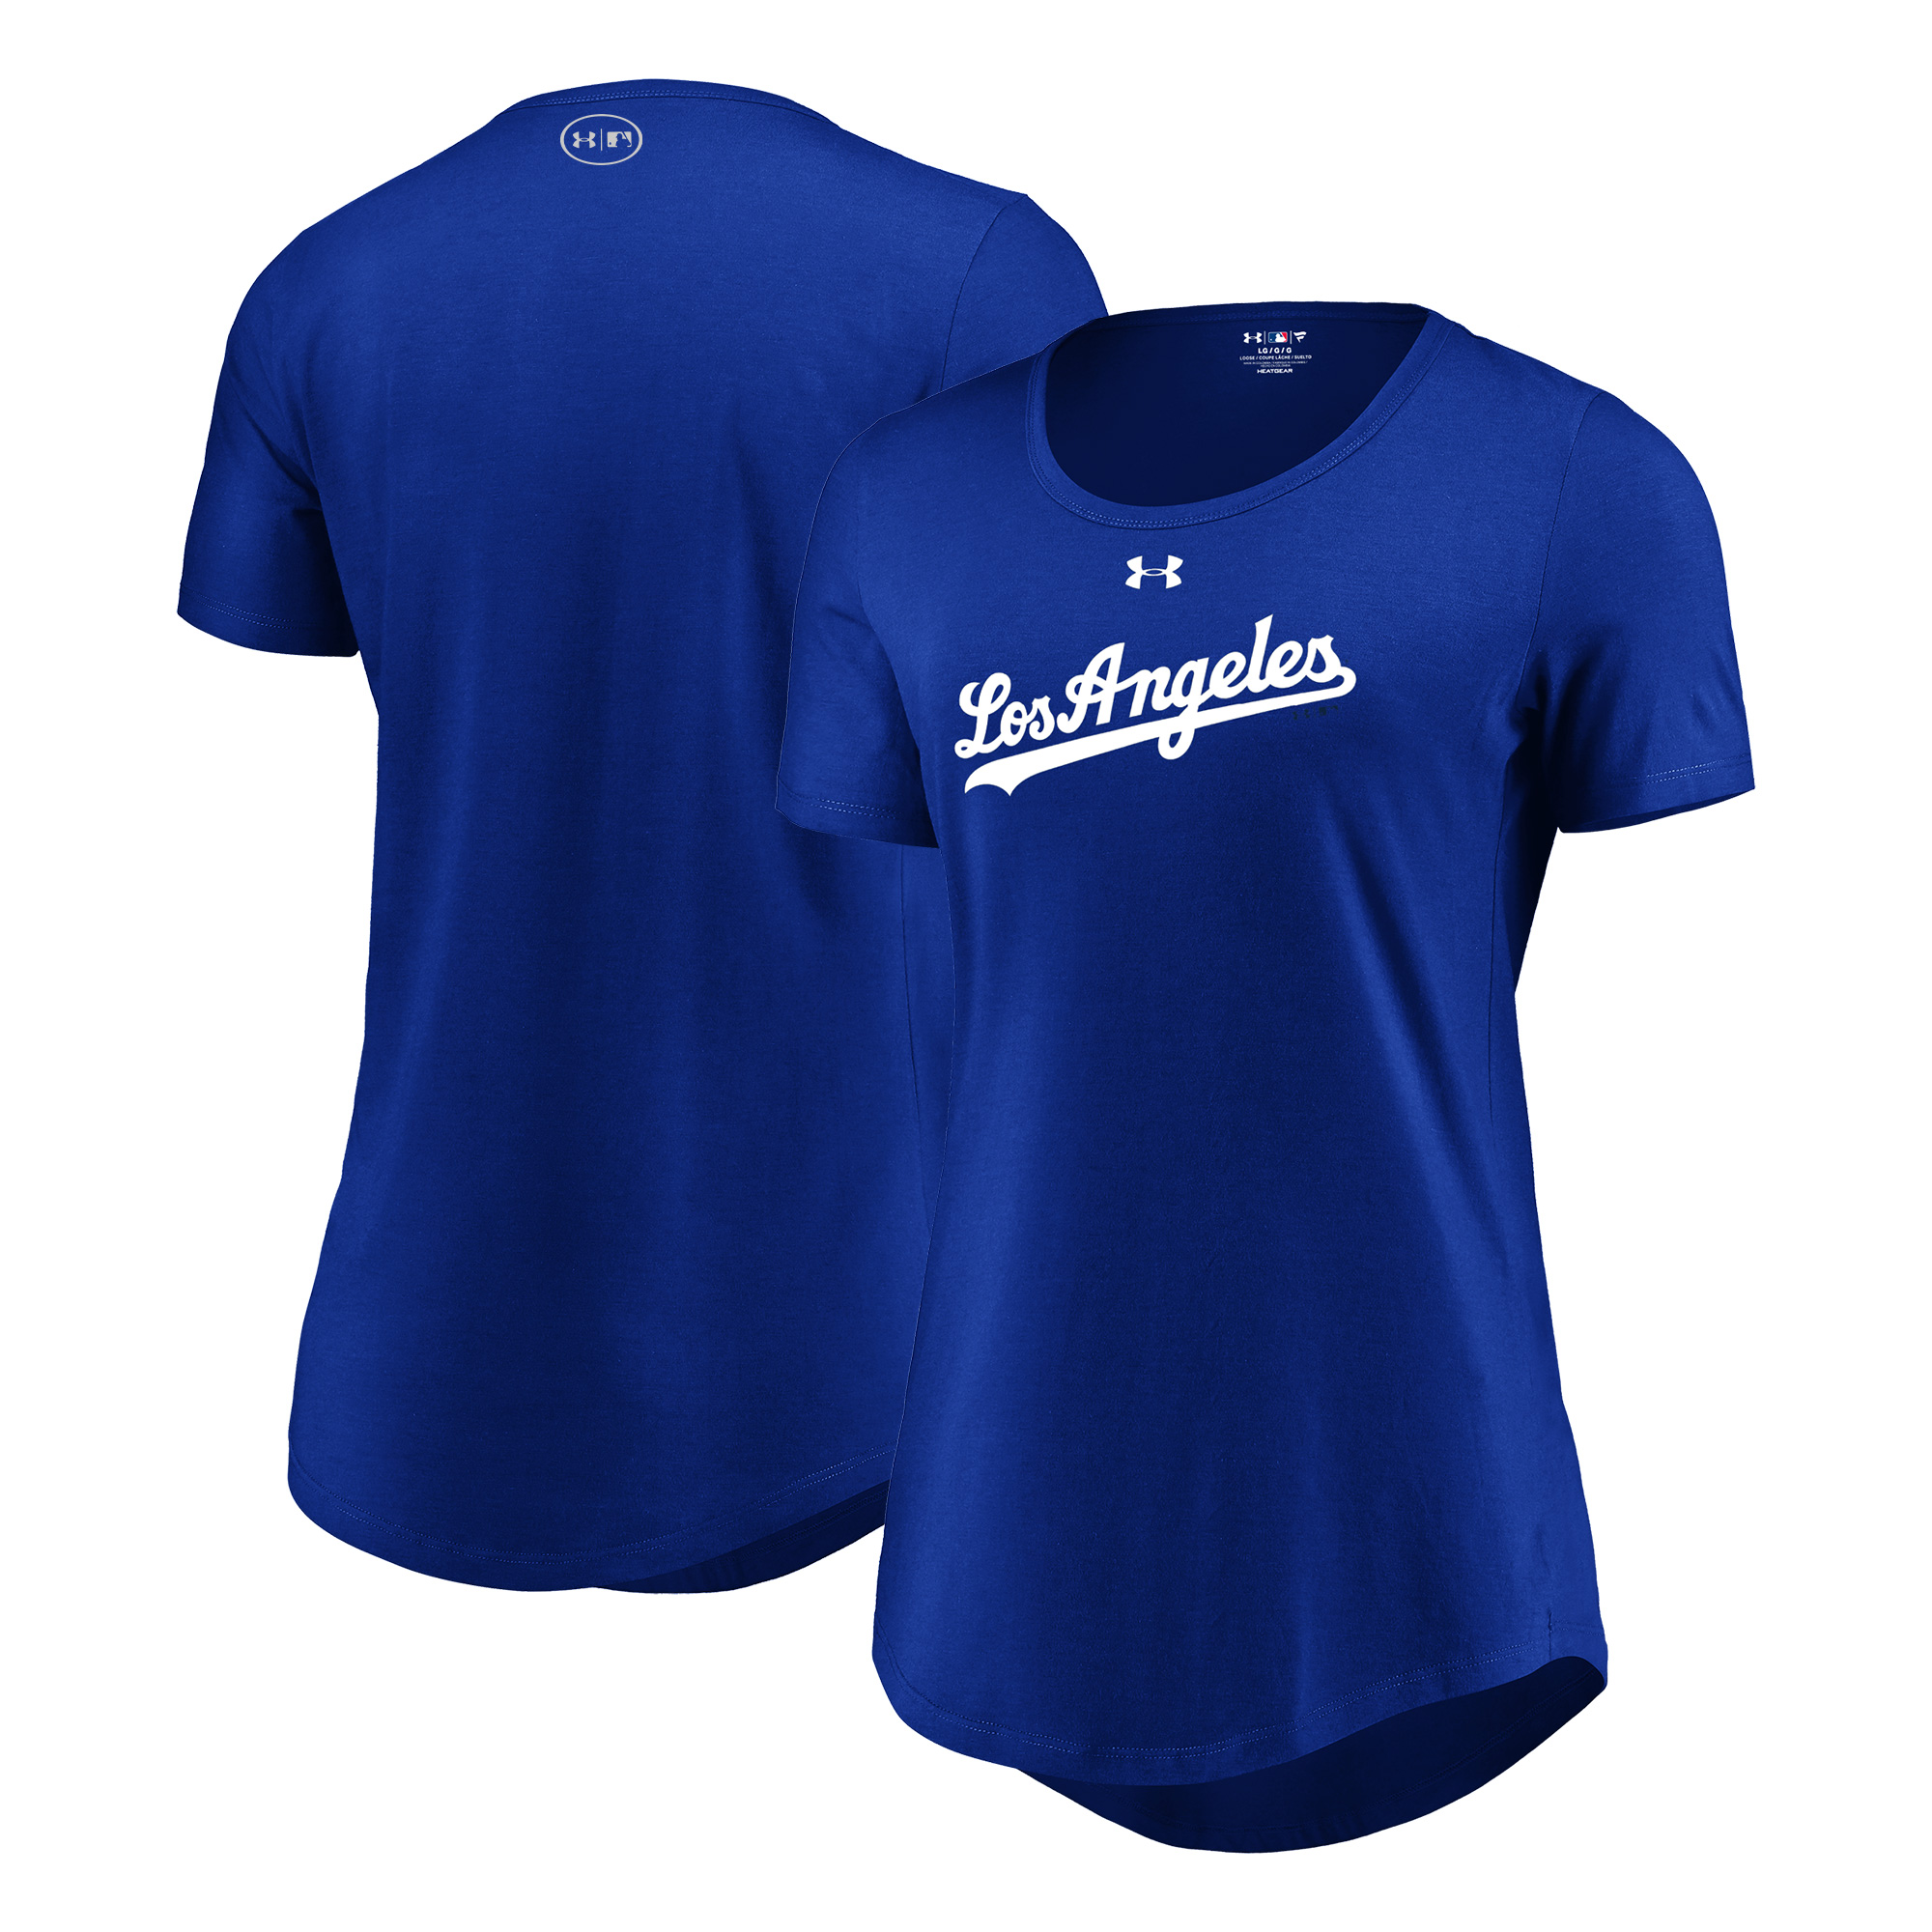 Los Angeles Dodgers Under Armour Women's Passion Road Team Font Scoop Performance Tri-Blend T-Shirt - Royal